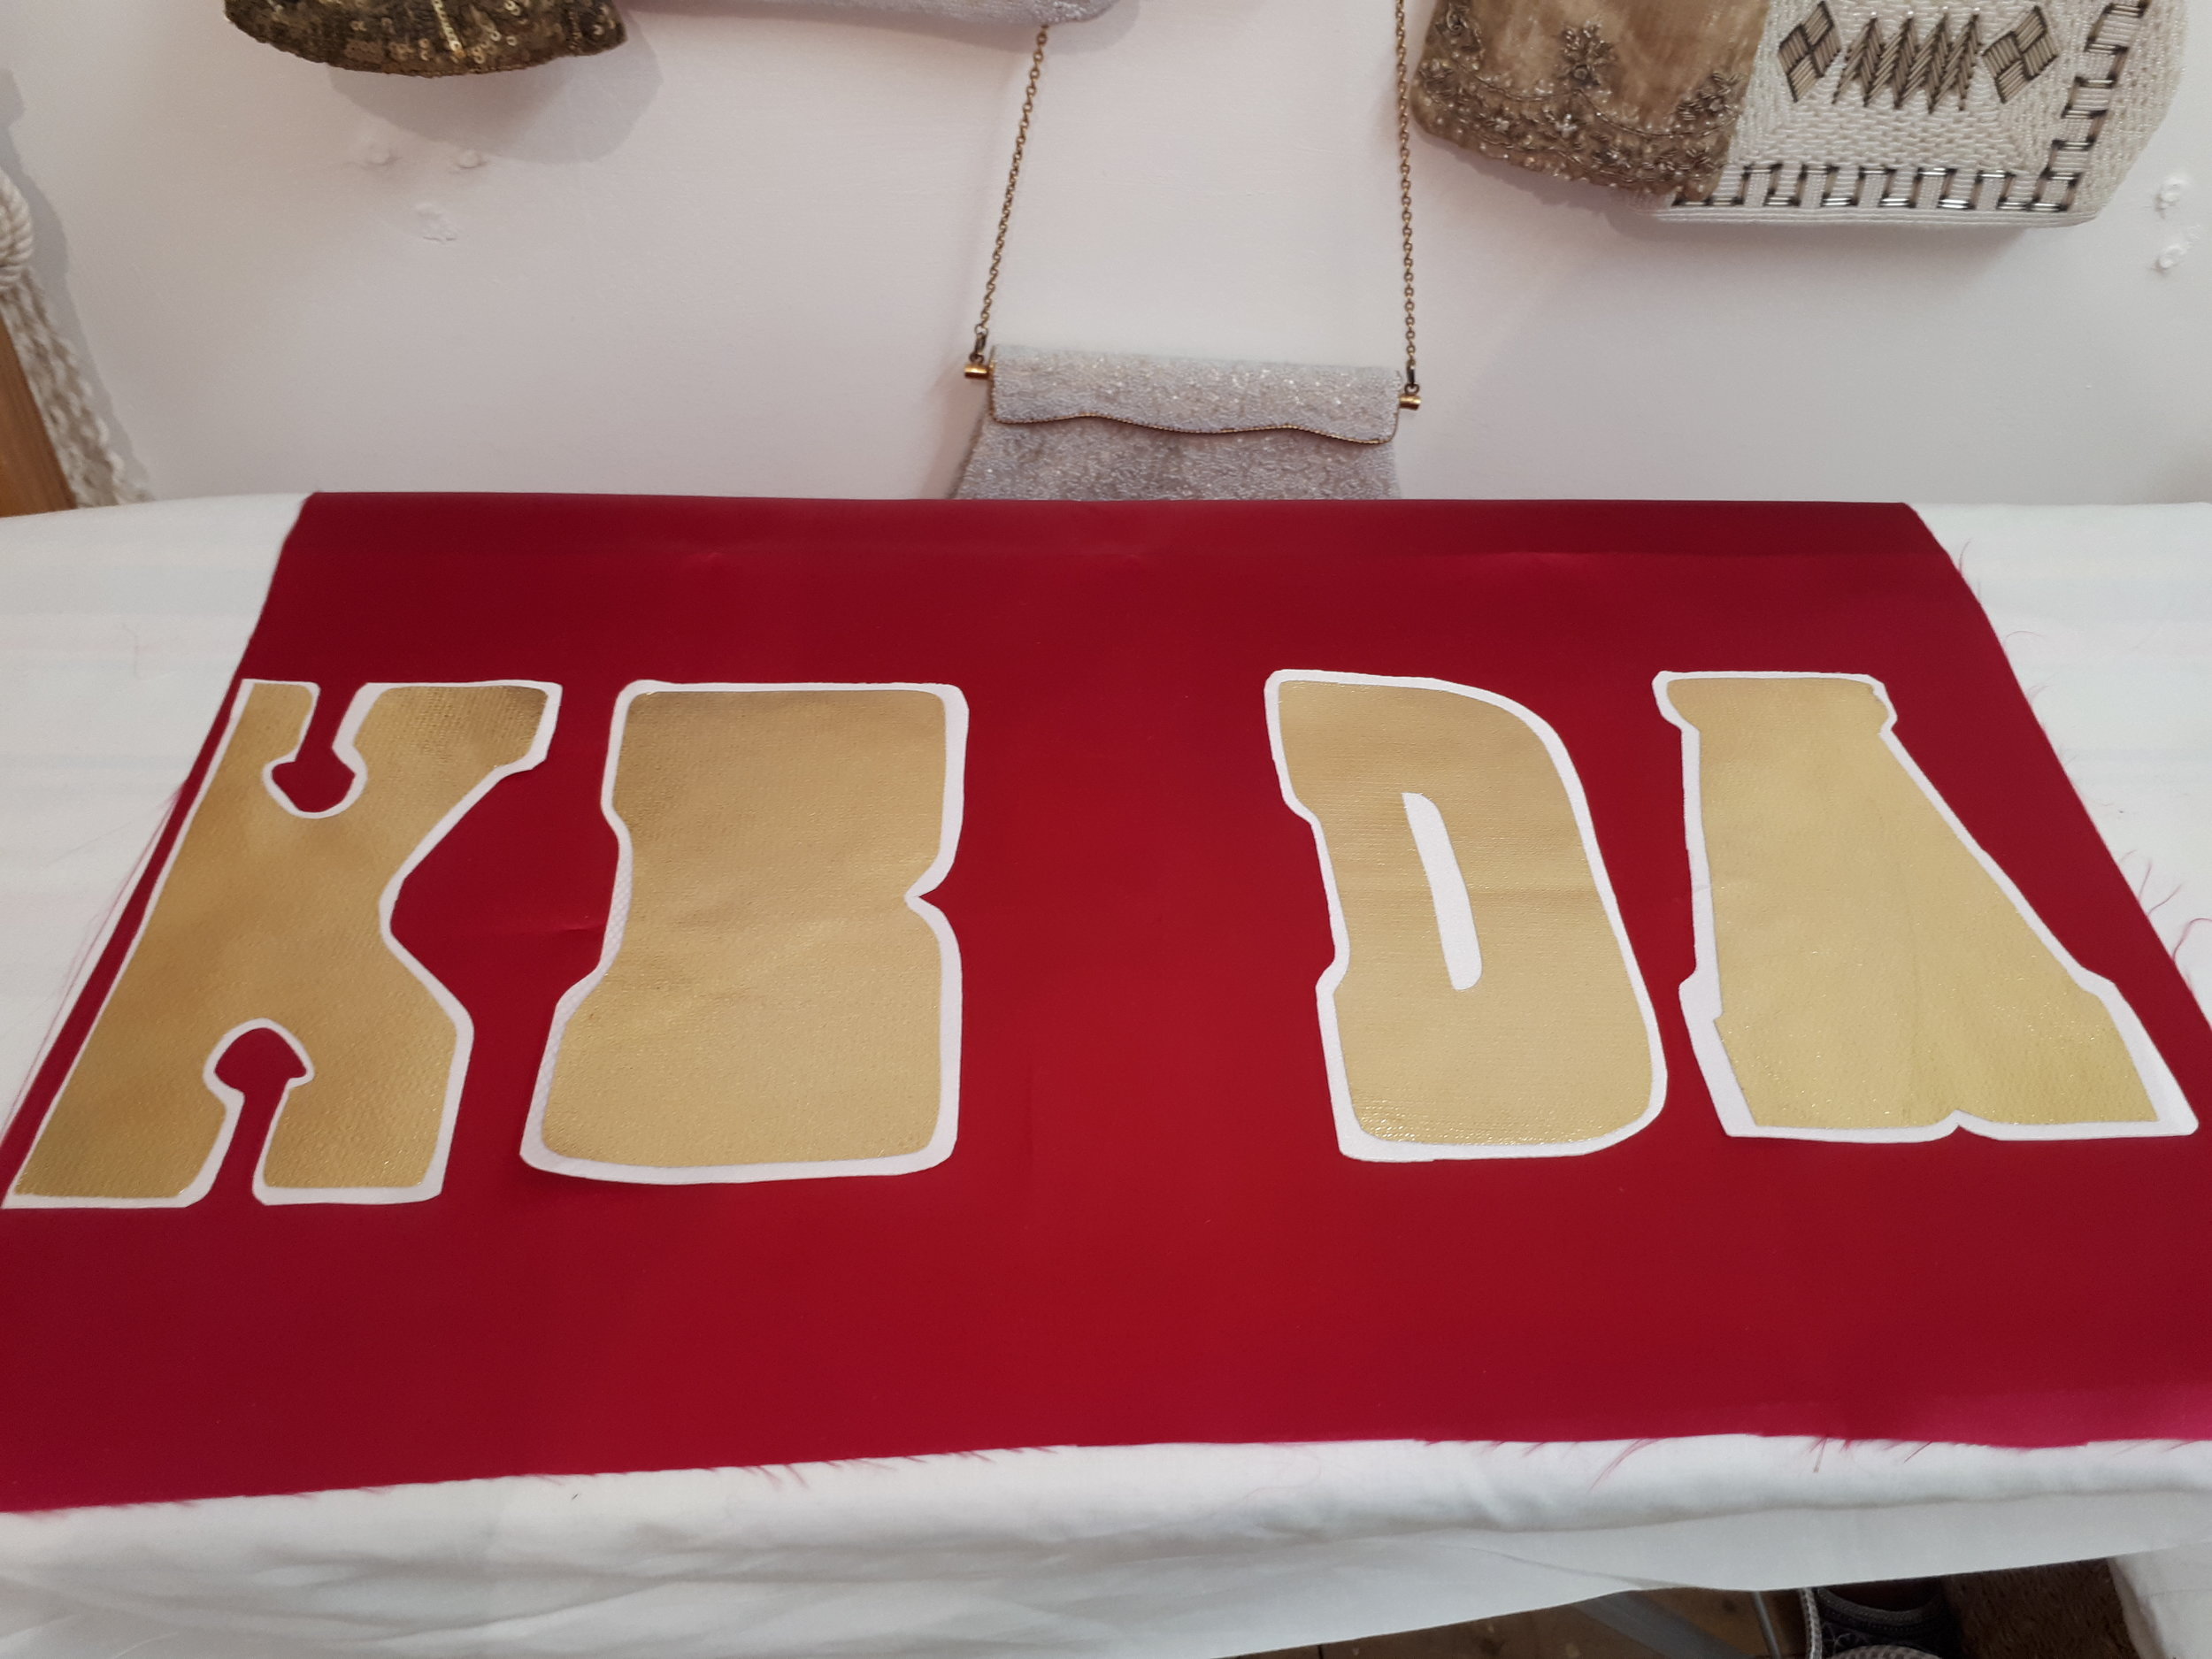 Attaching the Cake Daddy apron bow letters